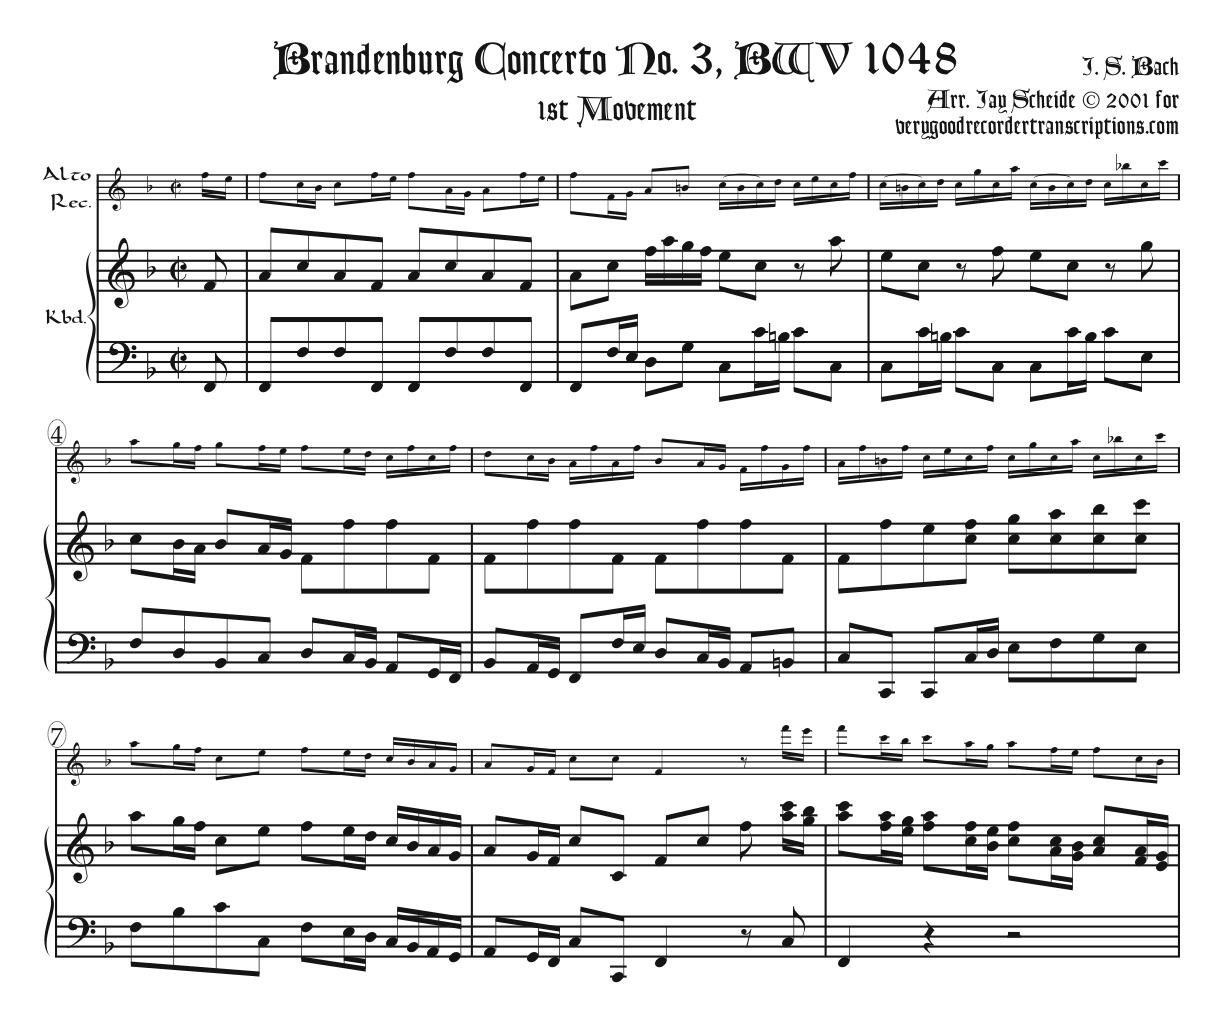 Brandenburg Concerto No. 3, BWV 1048 (now complete)